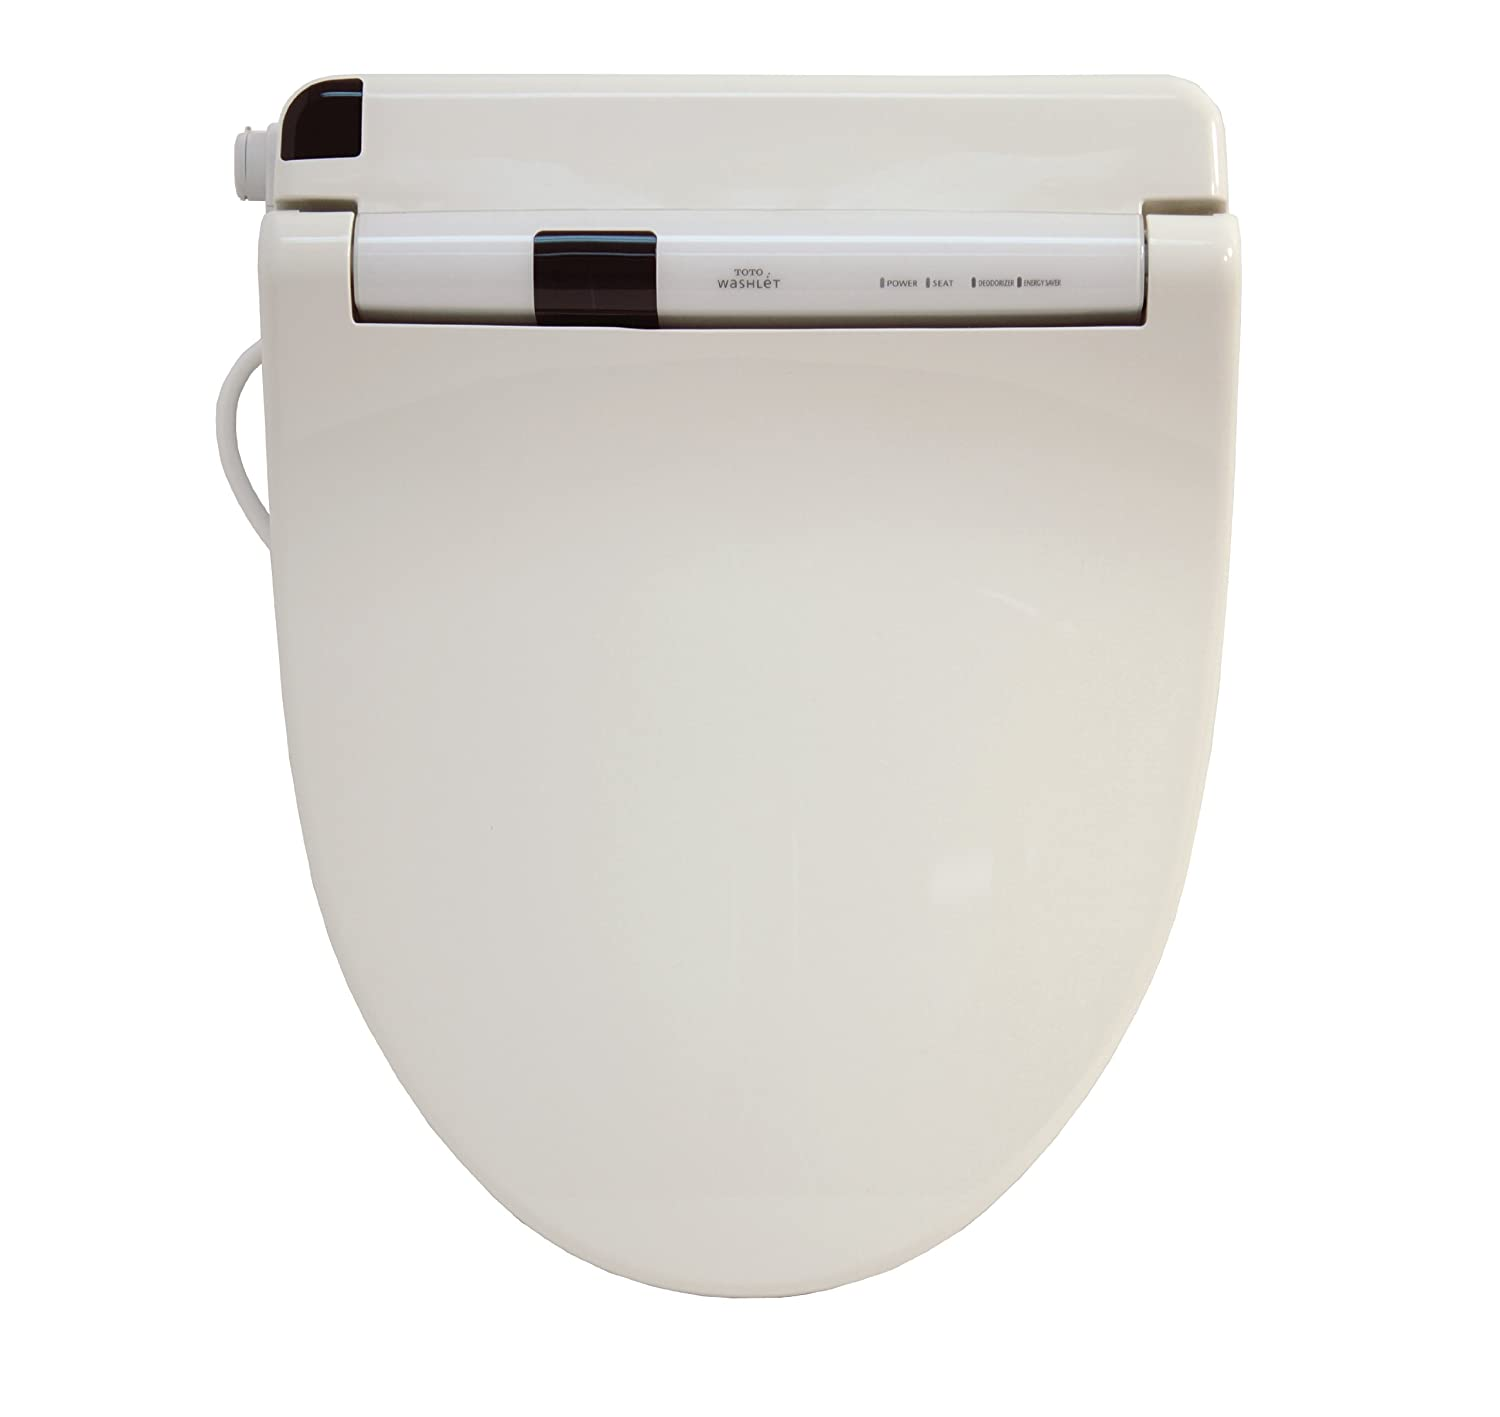 TOTO SW554-12 Washlet S300 Elongated Front Toilet Seat (Sedona Beige ...